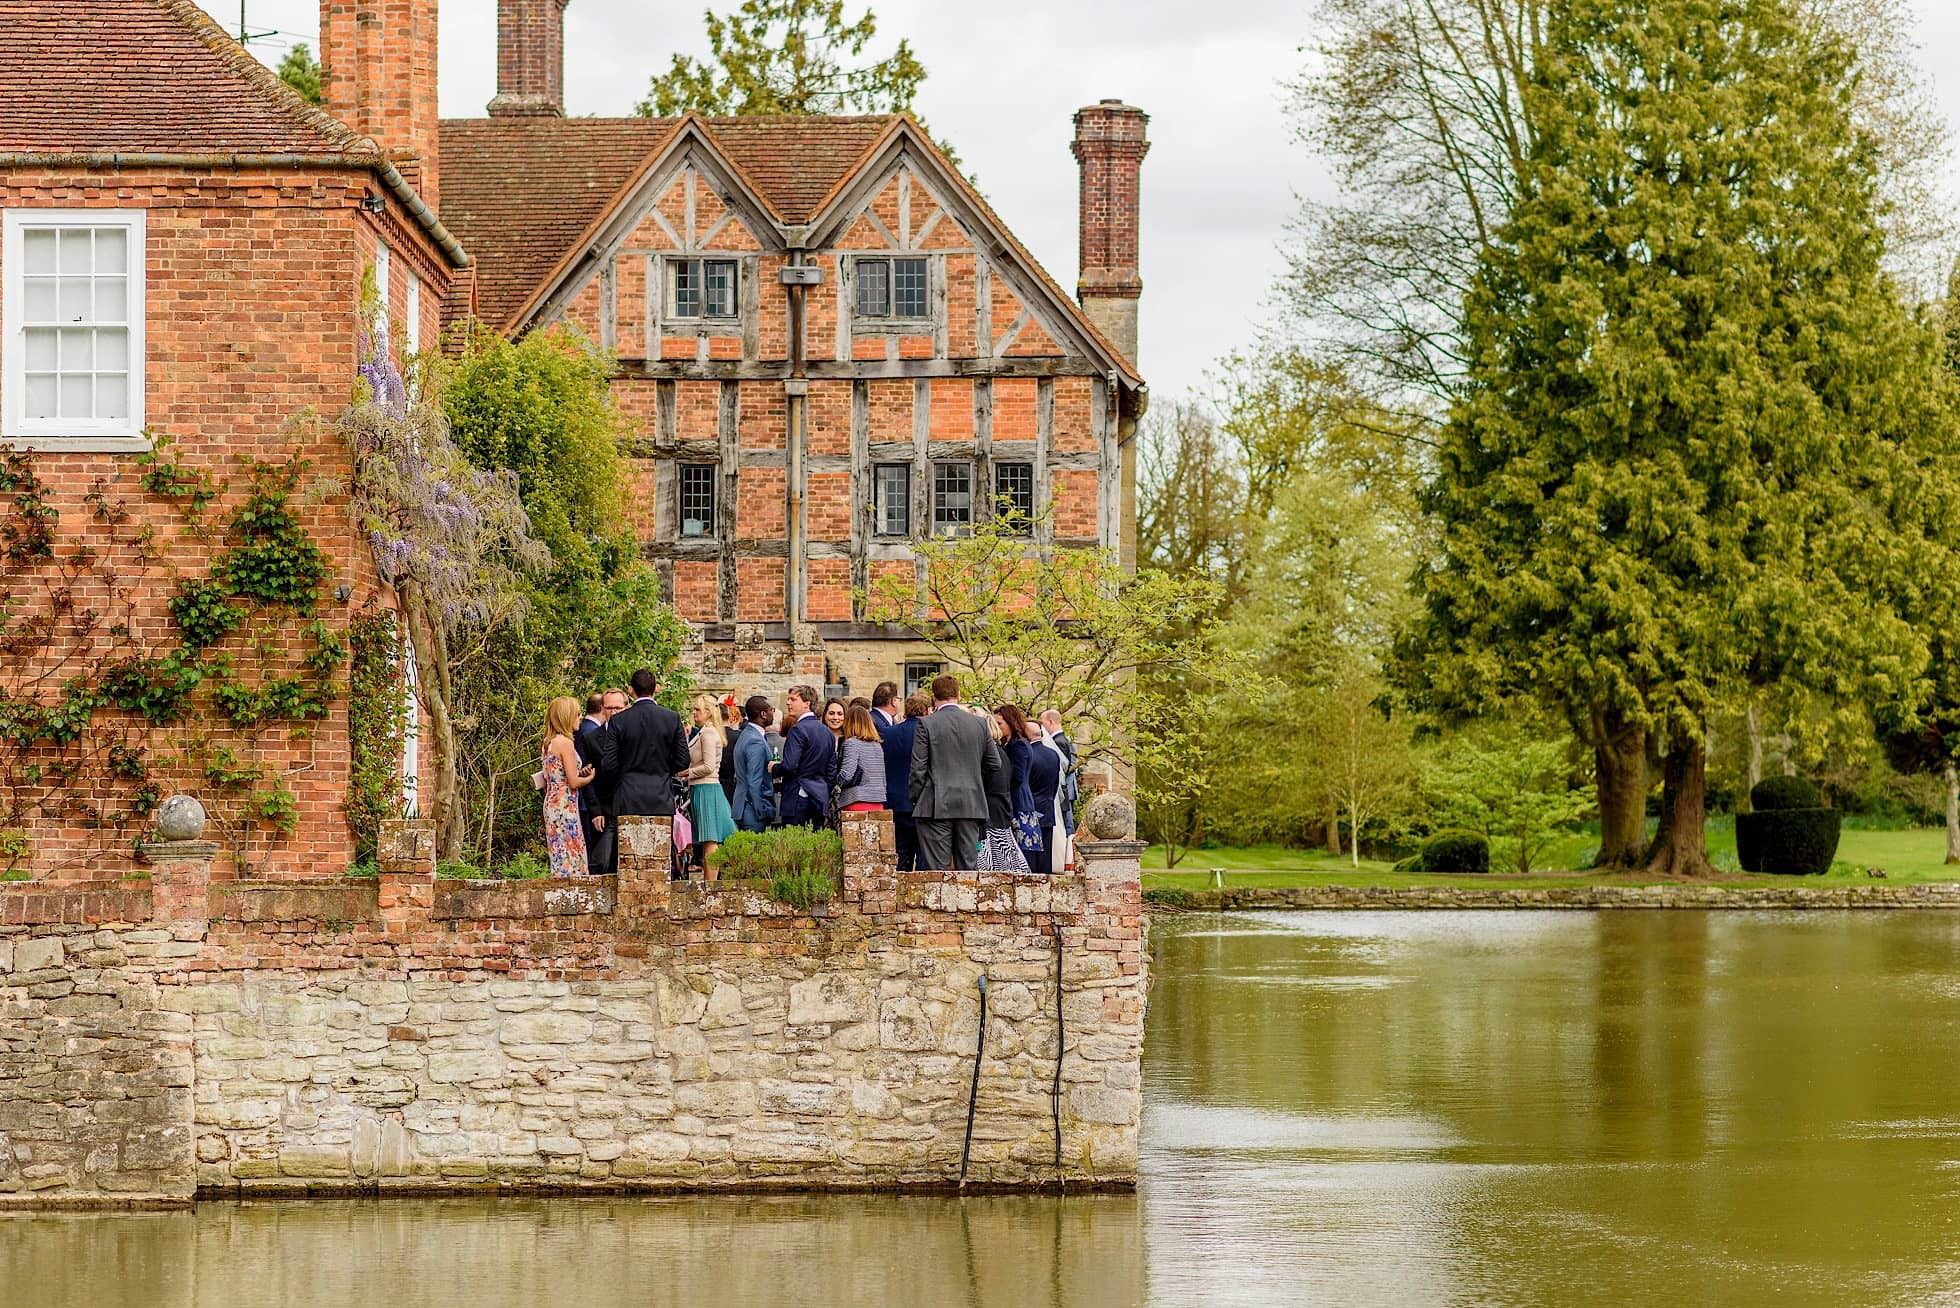 Moated manor house wedding venue